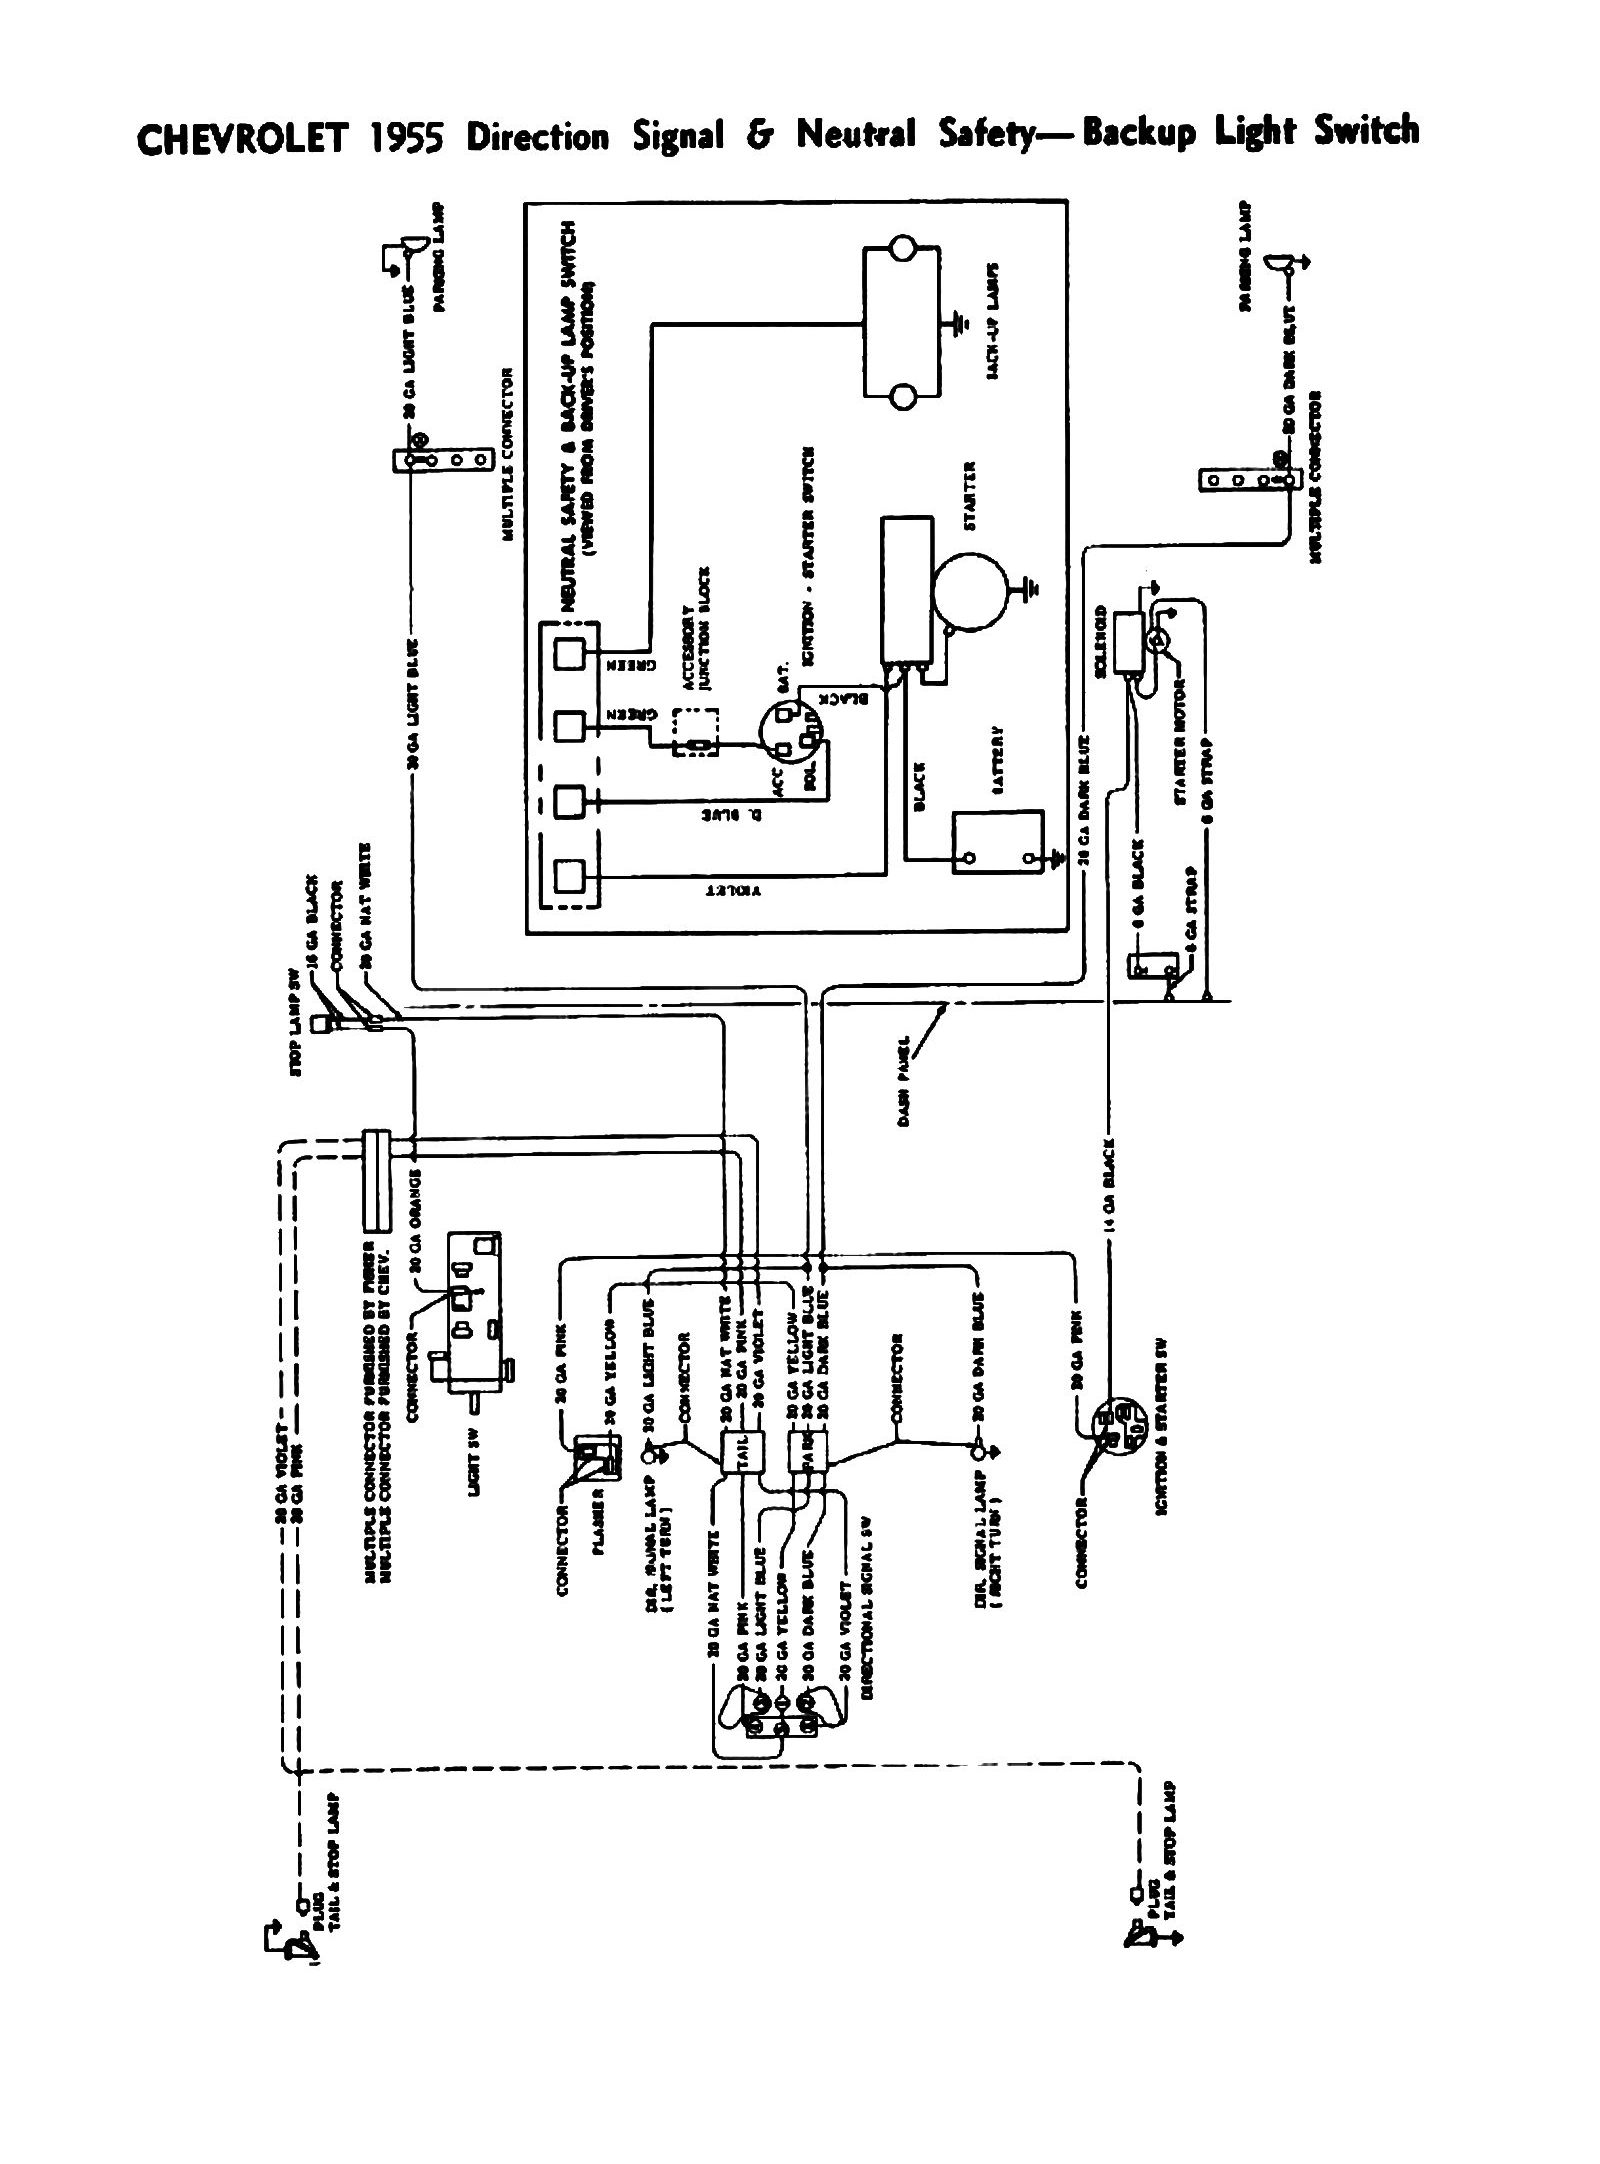 55signal chevy wiring diagrams chevy starter wiring diagram at virtualis.co